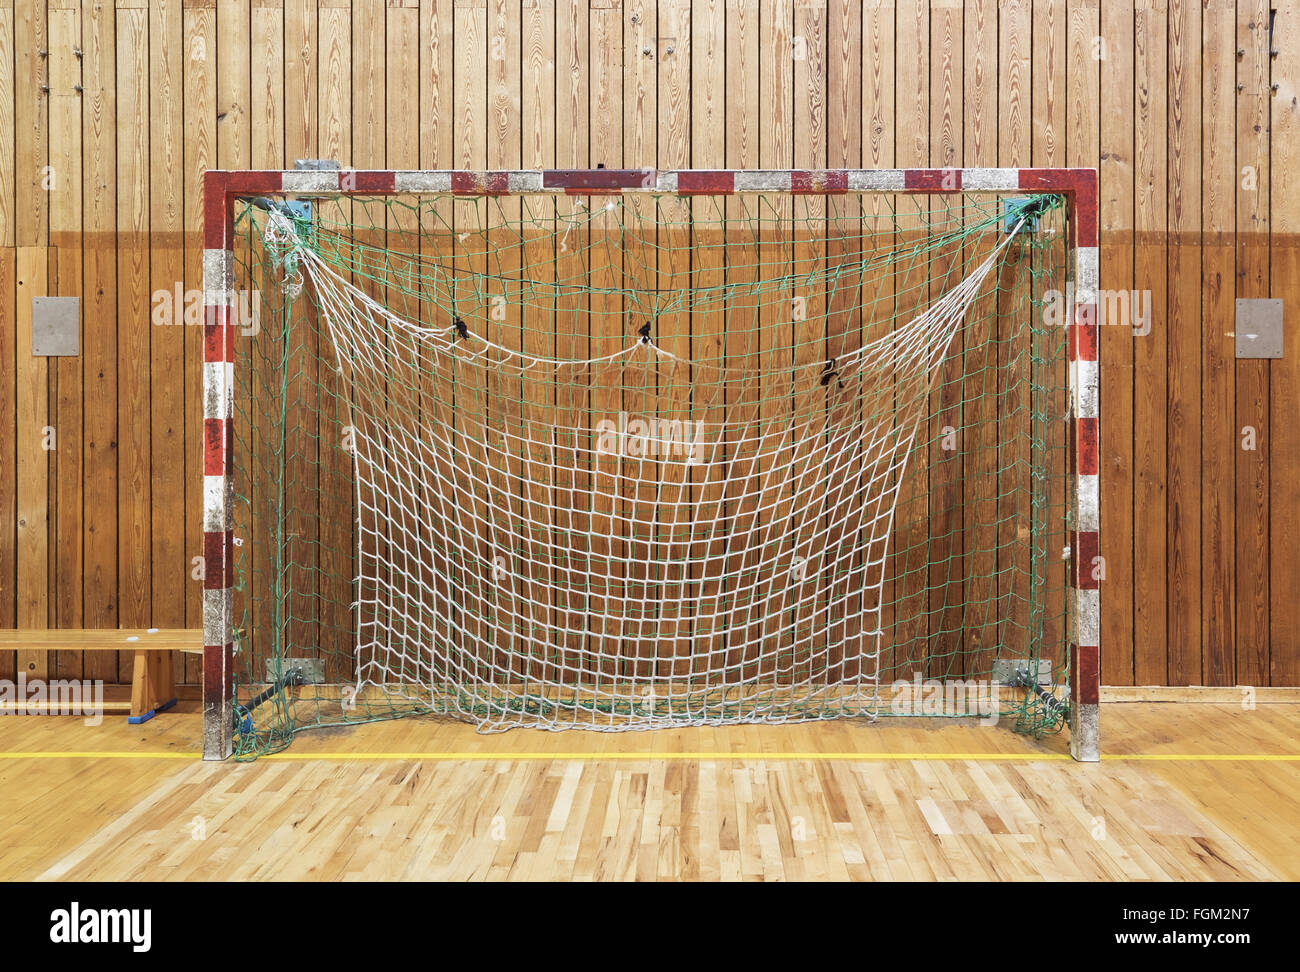 Old and worn soccer goalpost in old gymhall - Stock Image